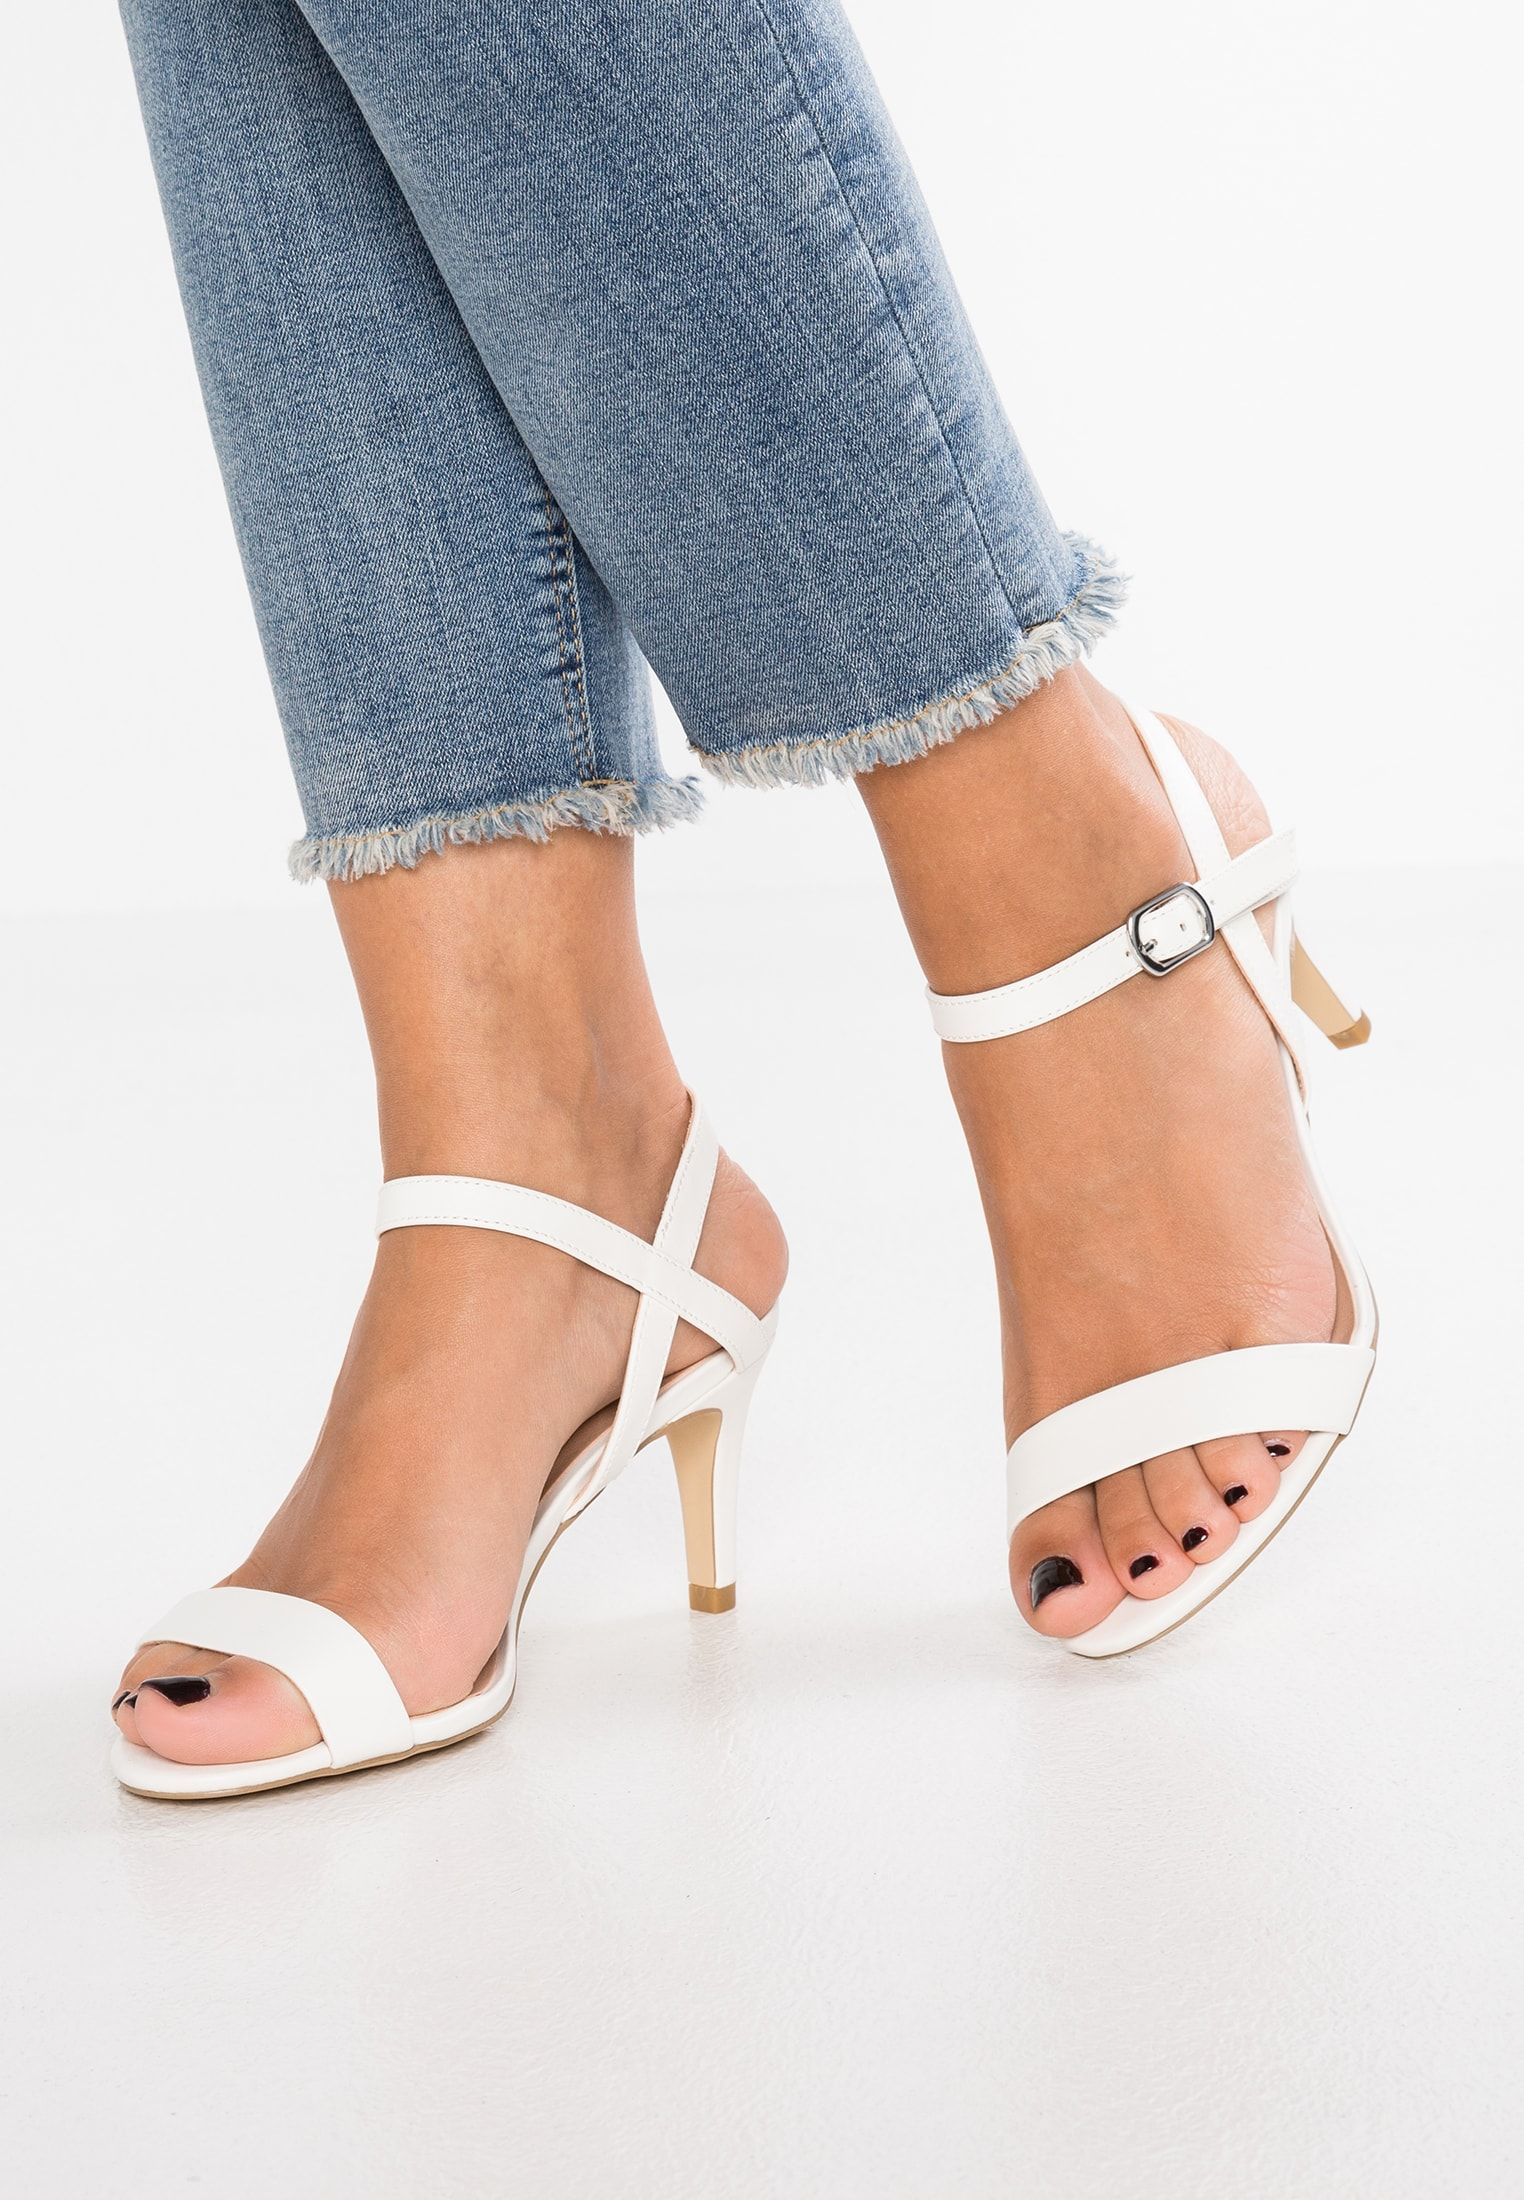 New Look Sheep Riemensandalette White Zalando De